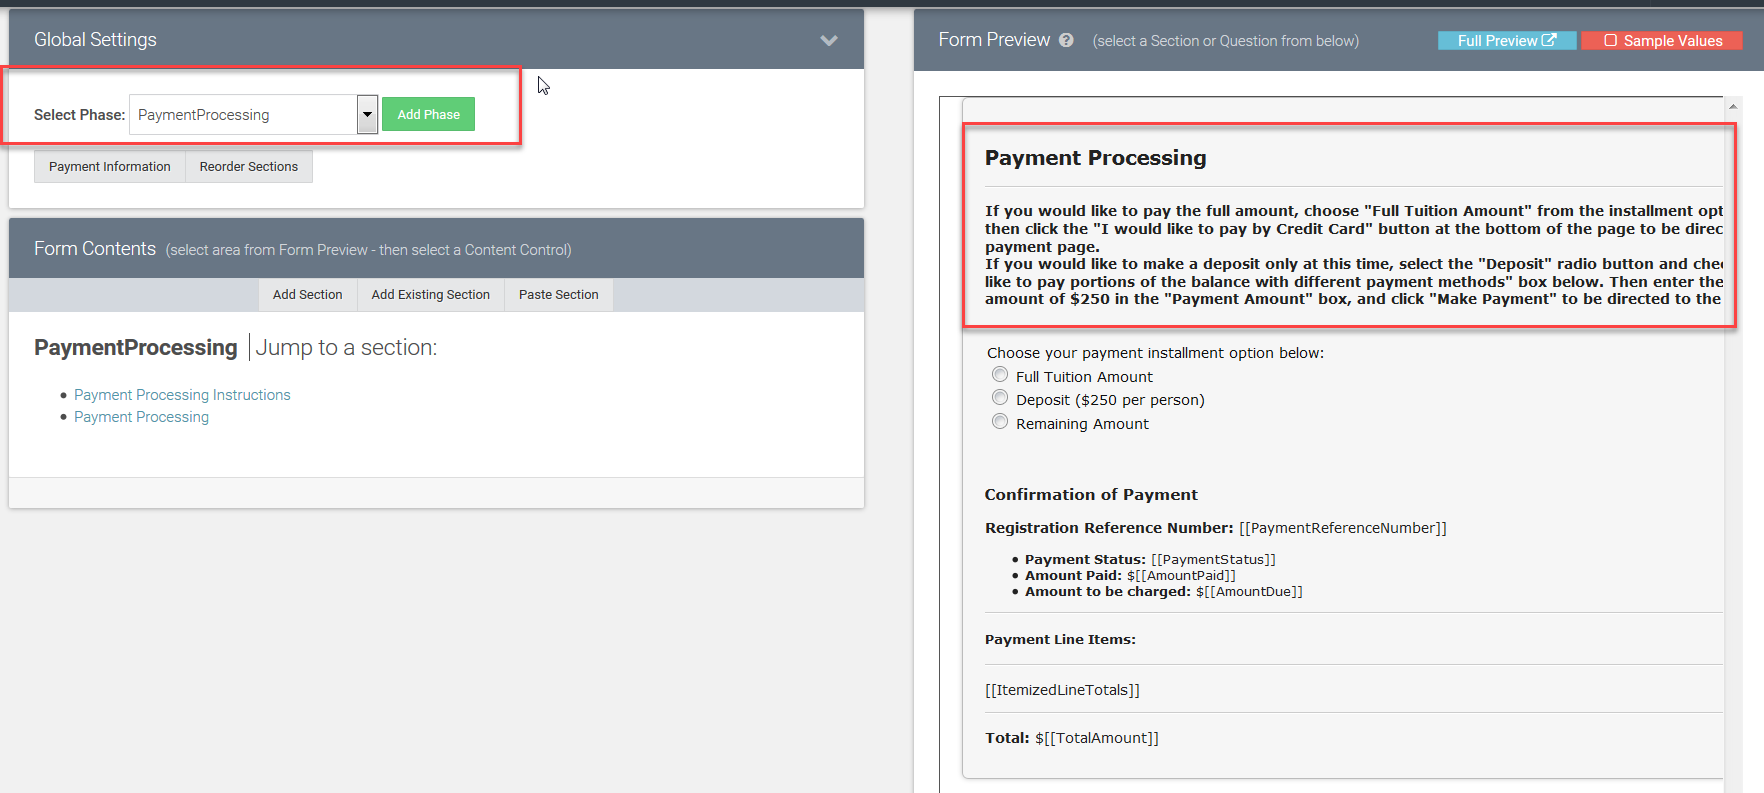 Payment Processing instructions